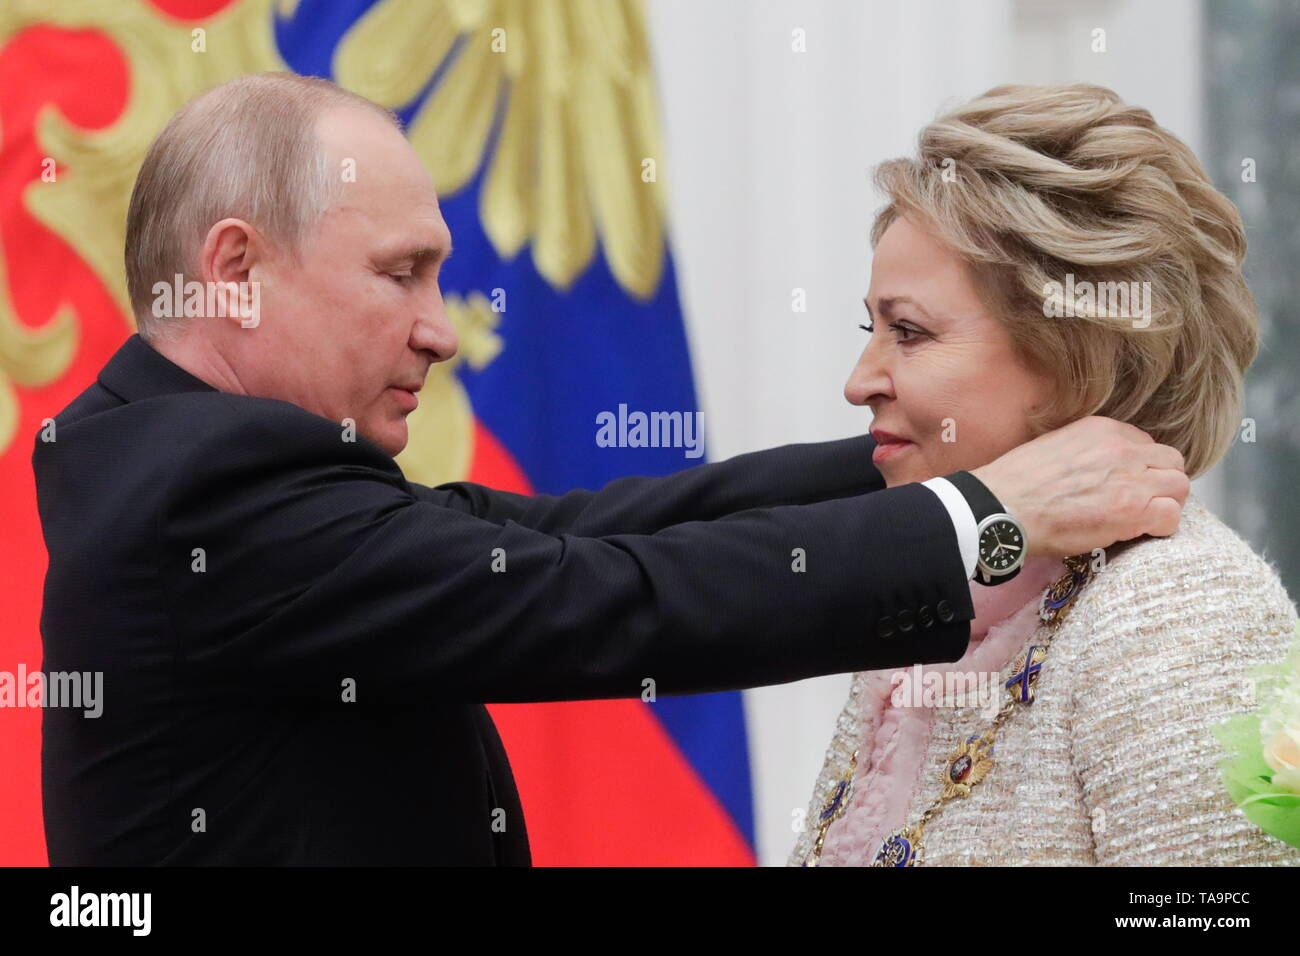 Moscow, Russia. 23rd May, 2019. MOSCOW, RUSSIA - MAY 23, 2019: Russia's President Vladimir Putin (L) and Russian Federation Council Chairperson Valentina Matviyenko during a ceremony to present state decorations at Moscow's Kremlin. Mikhail Metzel/TASS Credit: ITAR-TASS News Agency/Alamy Live News - Stock Image